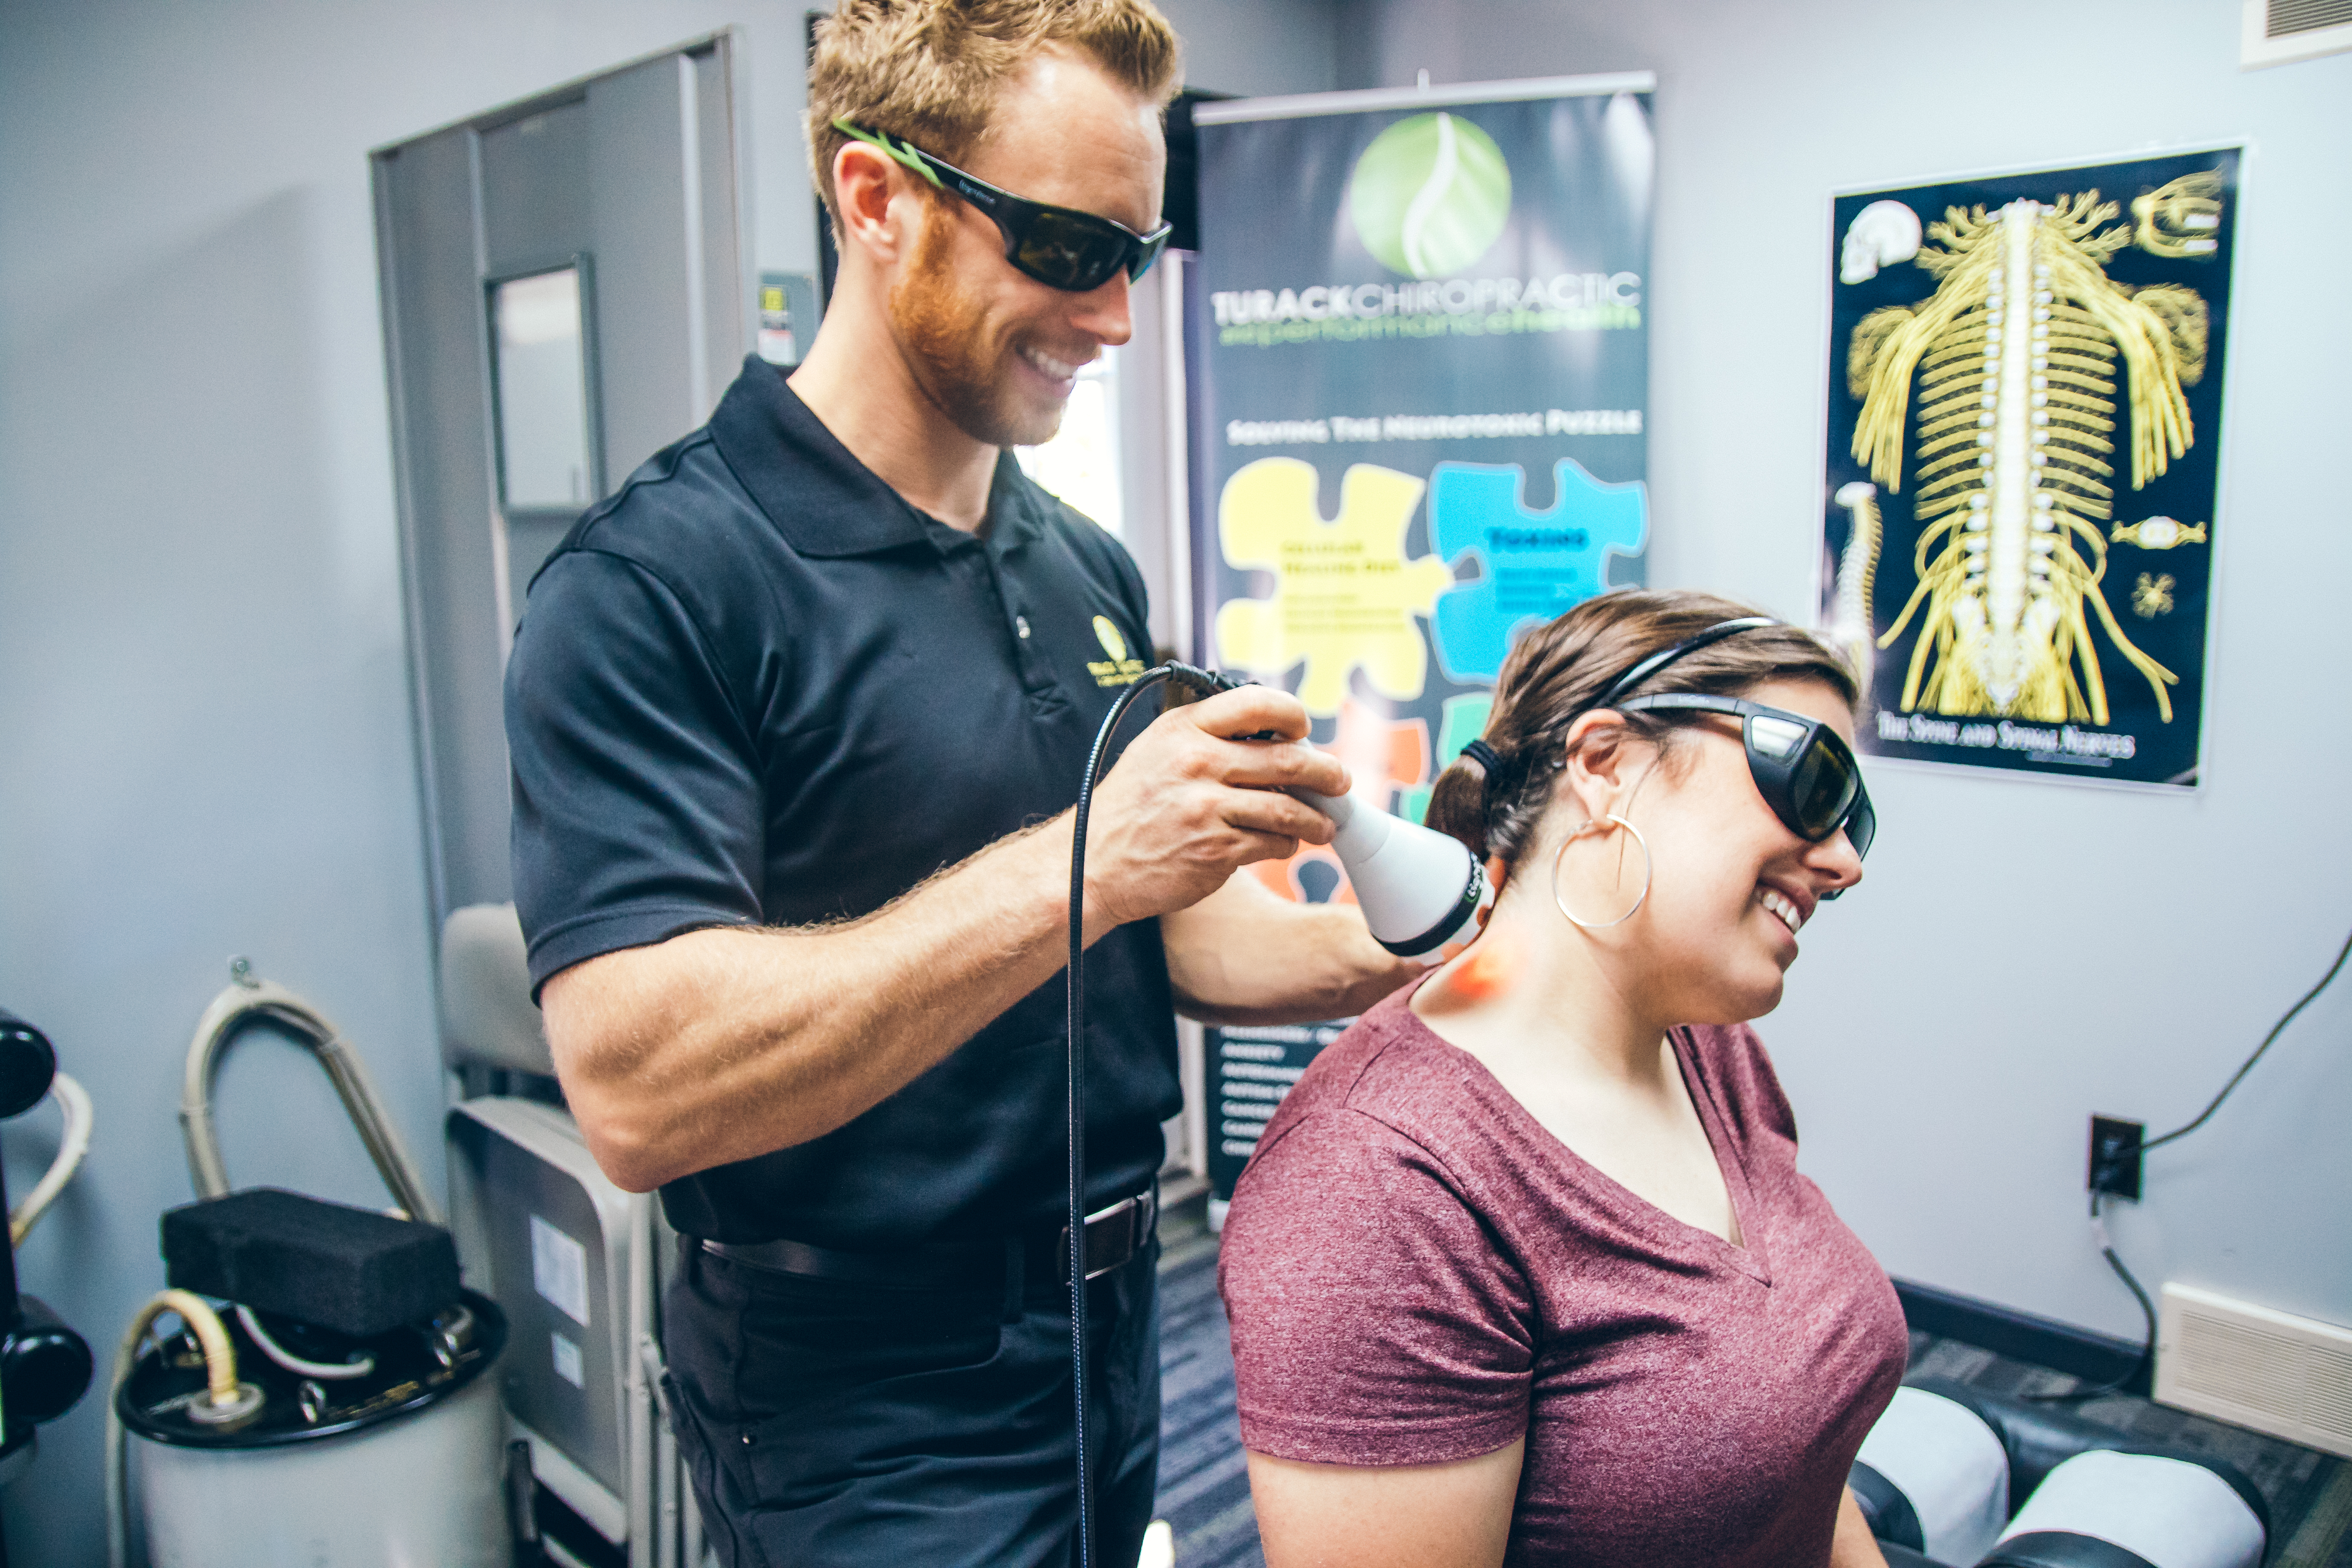 Laser Therapy in Wexford, Pa. - Turack Chiropractic